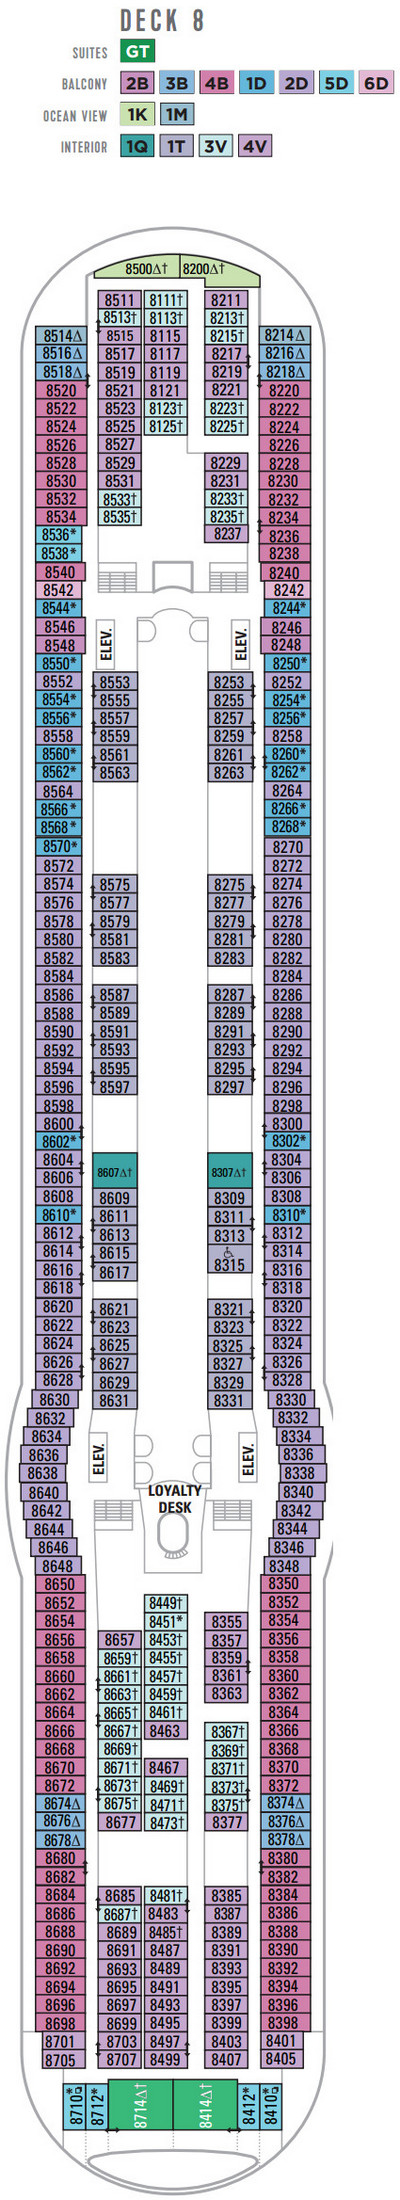 Liberty Of The Seas Deck 8 layout